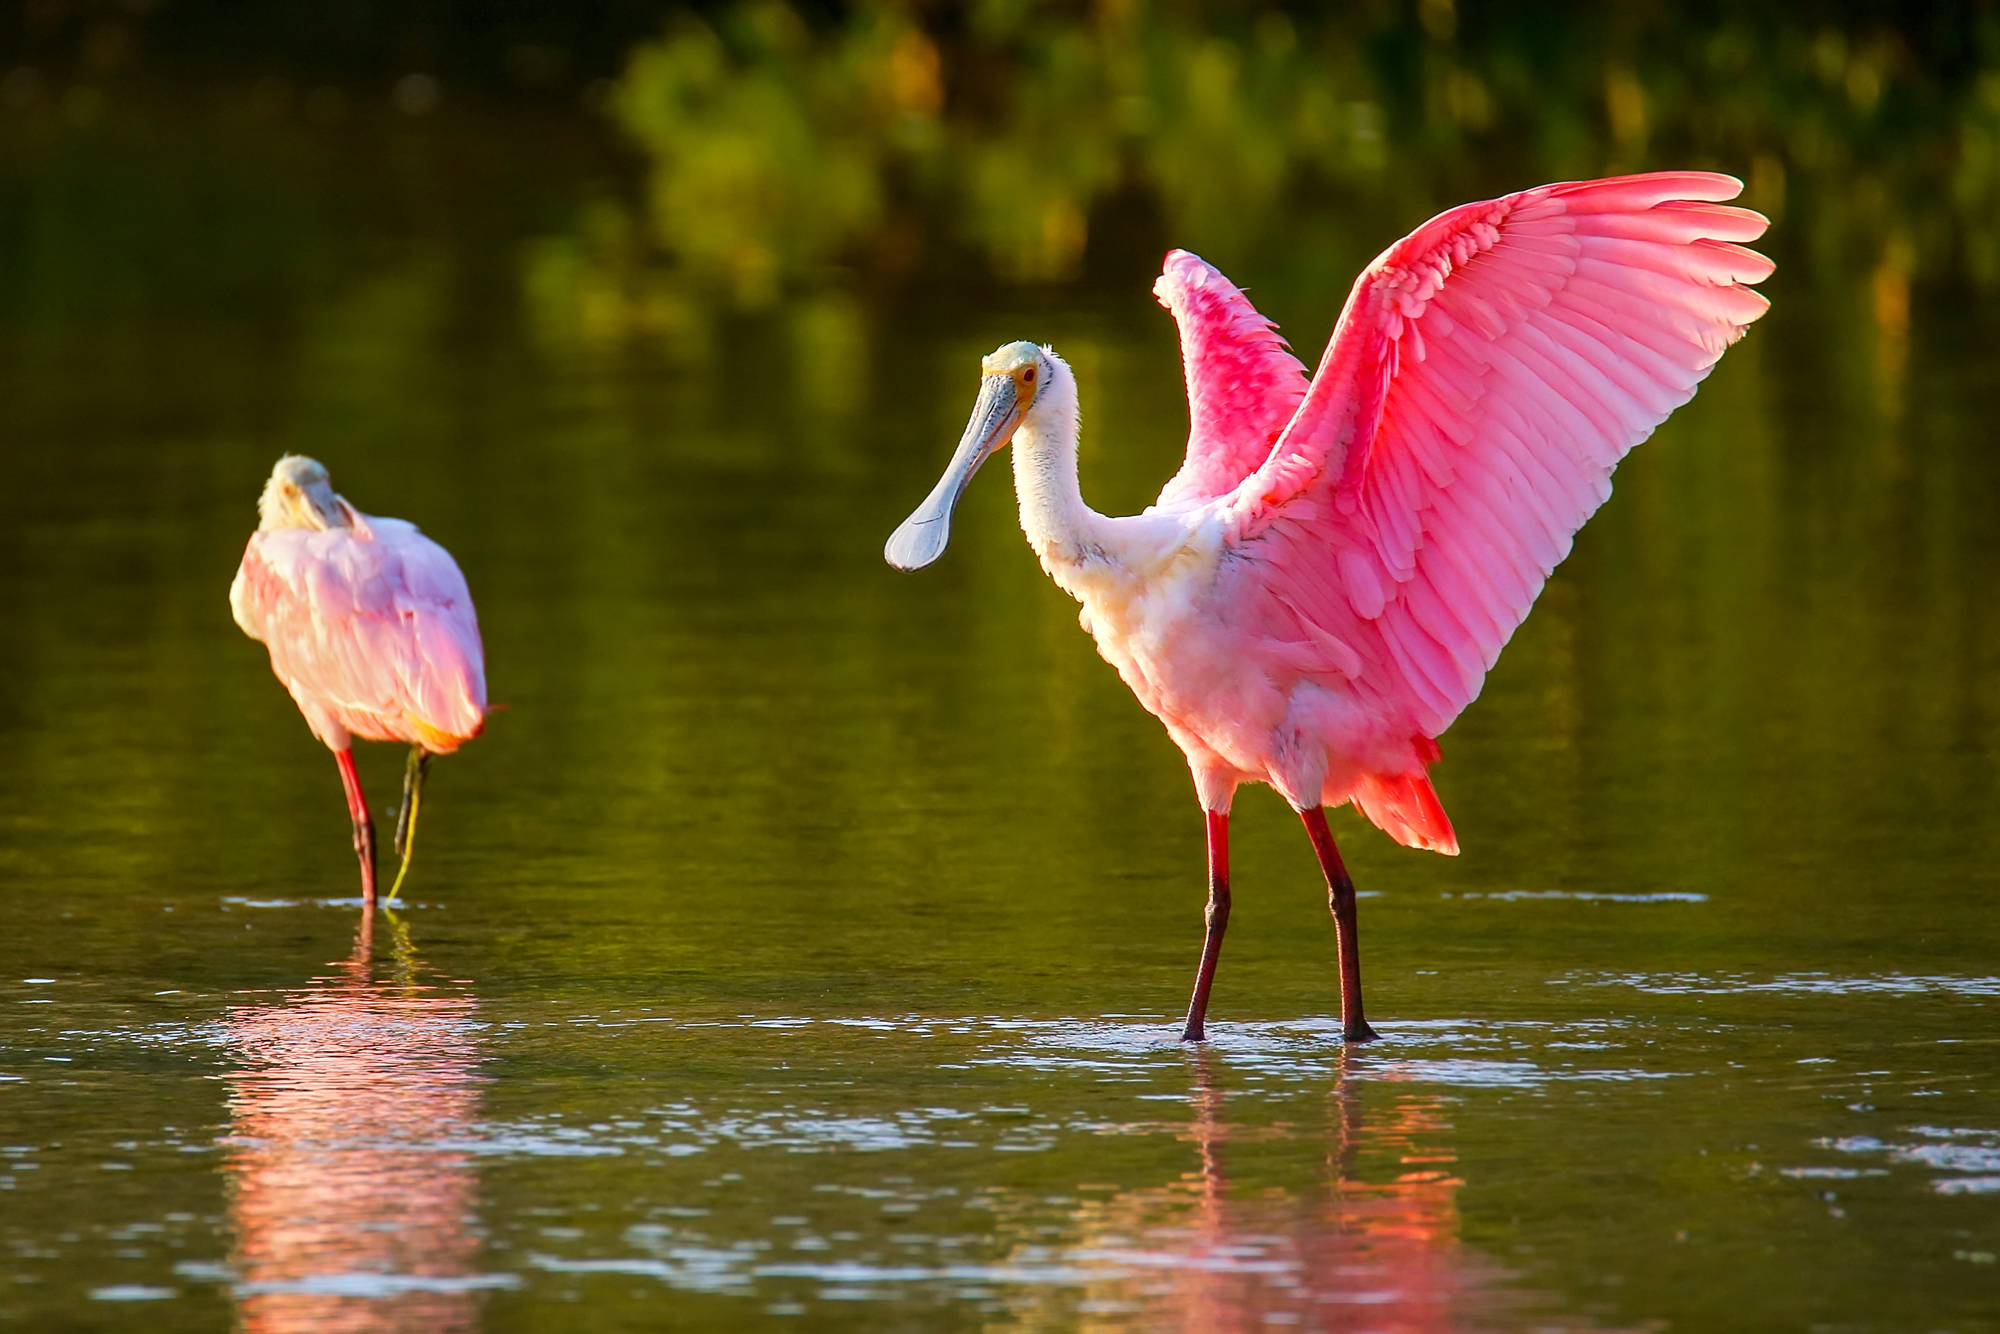 Roseate Spoonbill - (Ajaia ajaja) name is inspired by their distinctive spoon-shaped bill